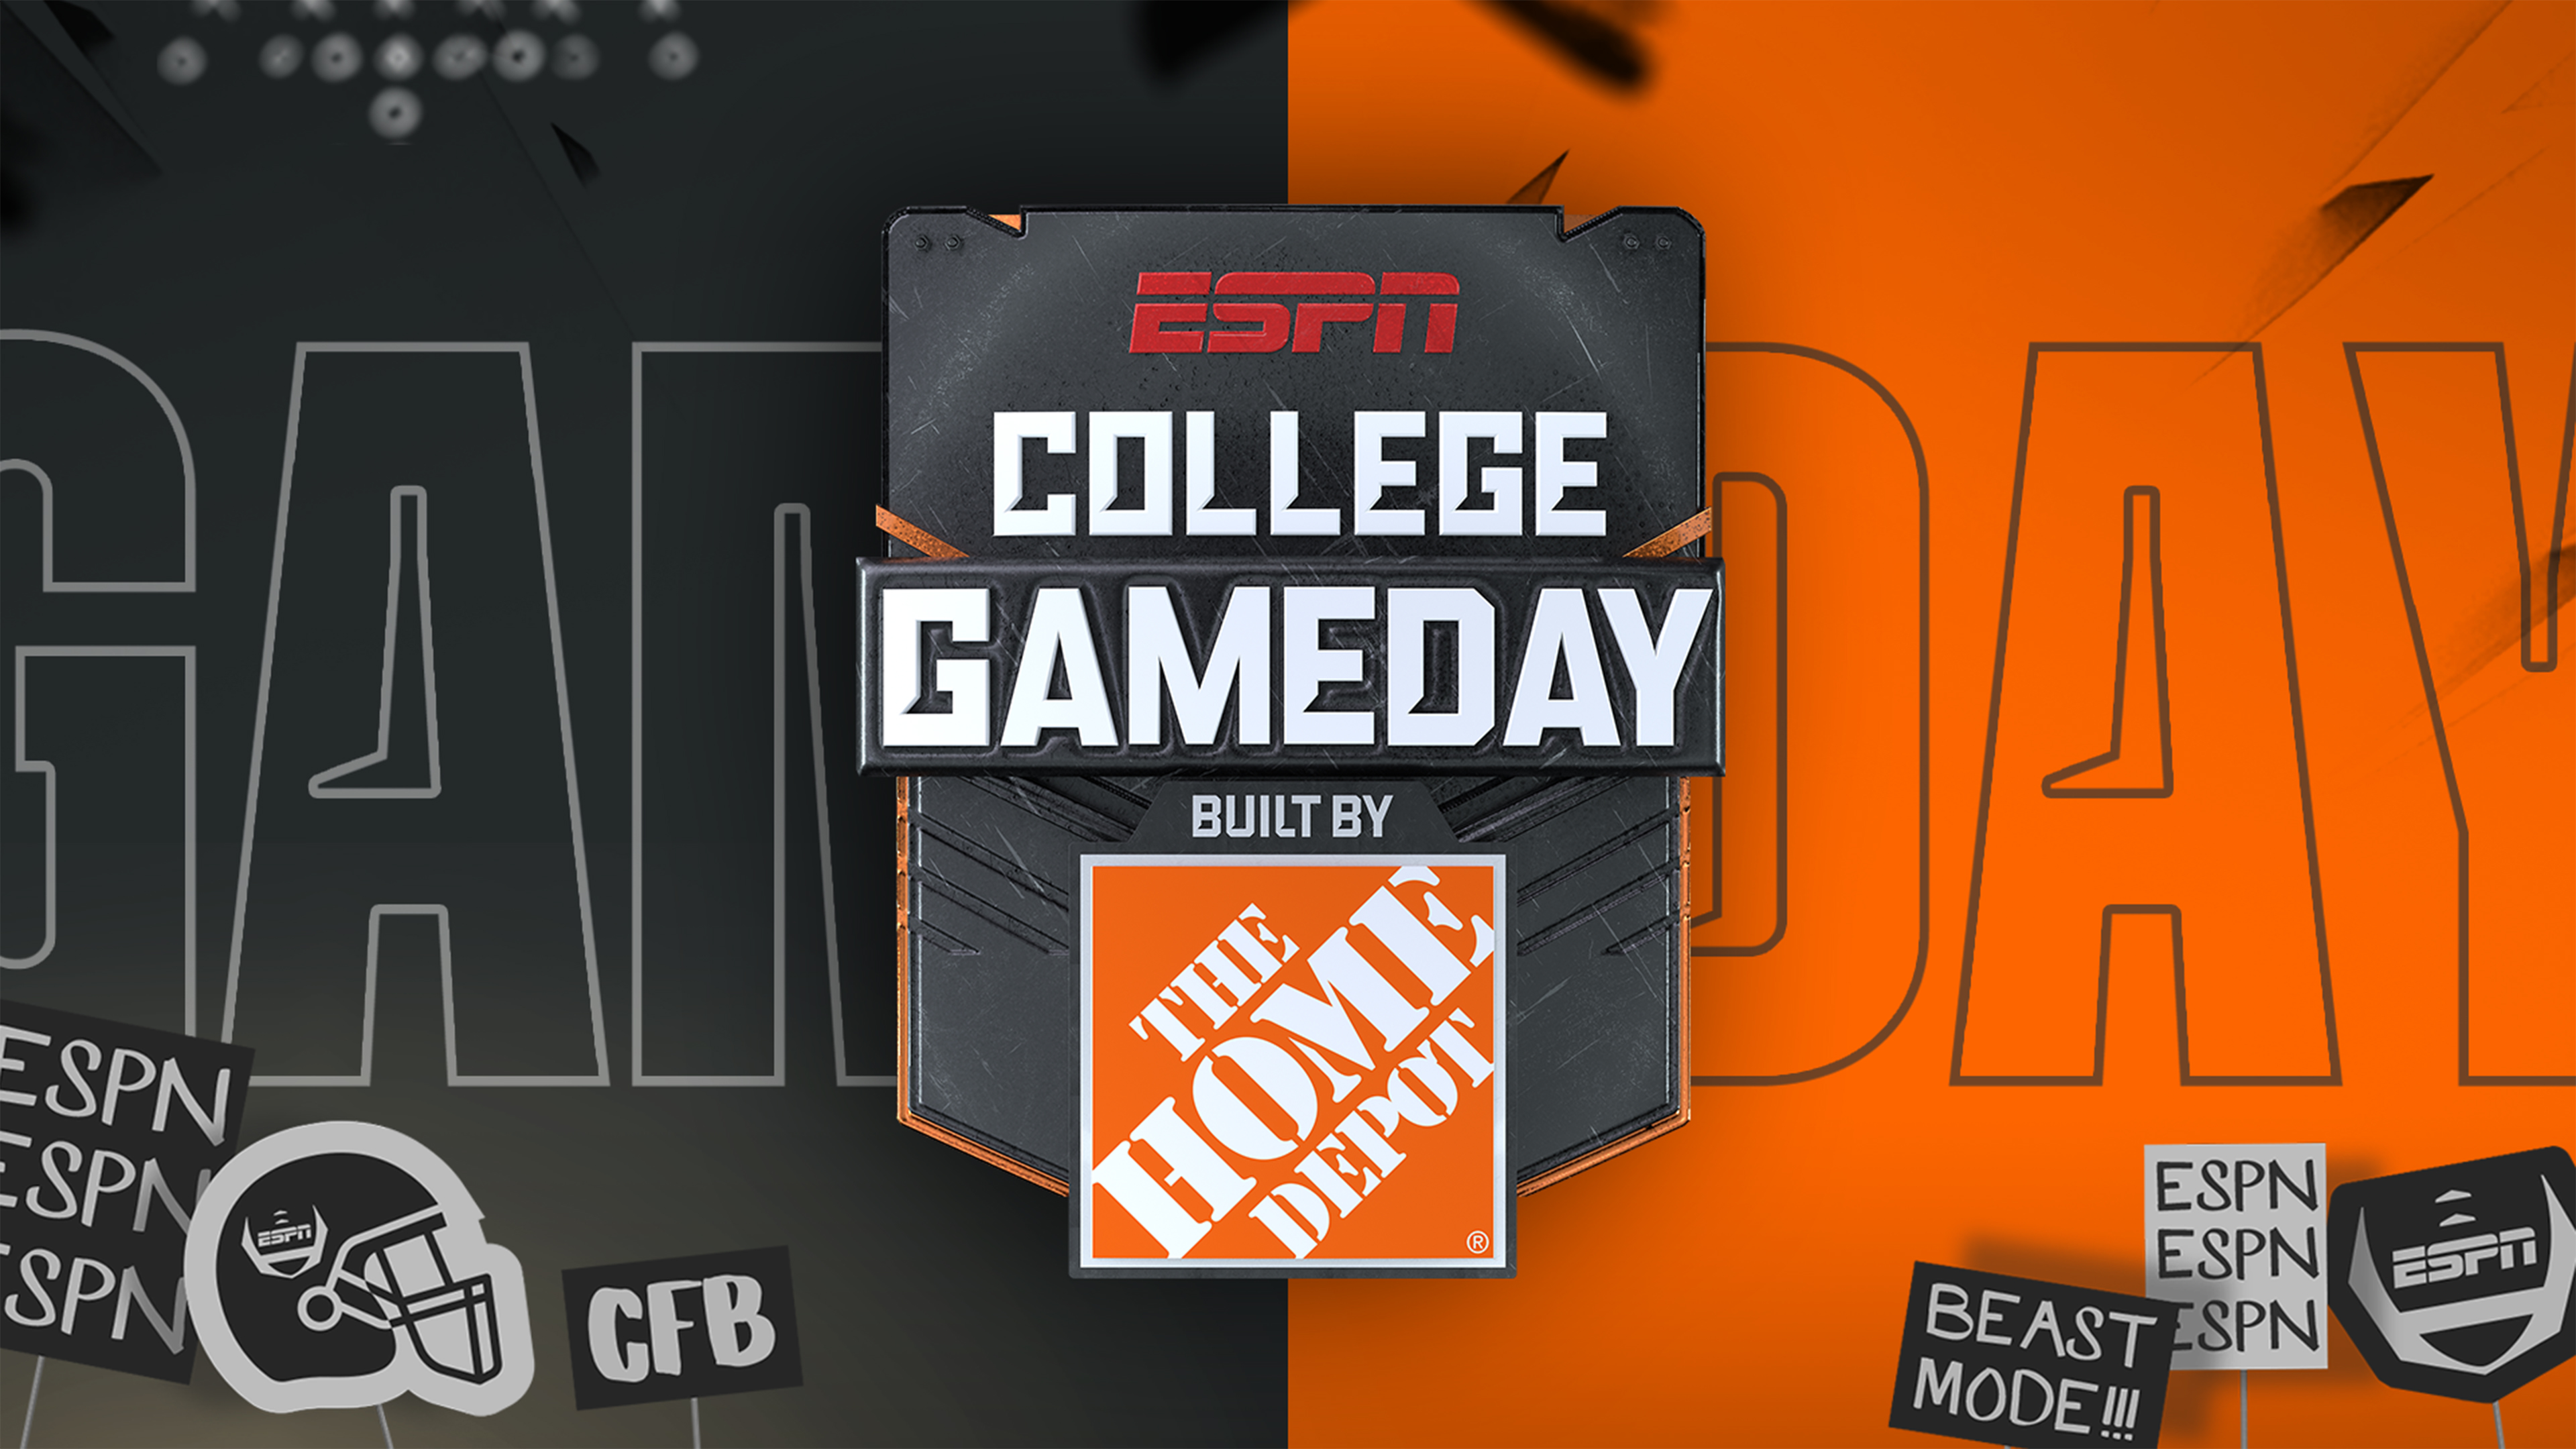 College GameDay Featured: Built by The Home Depot